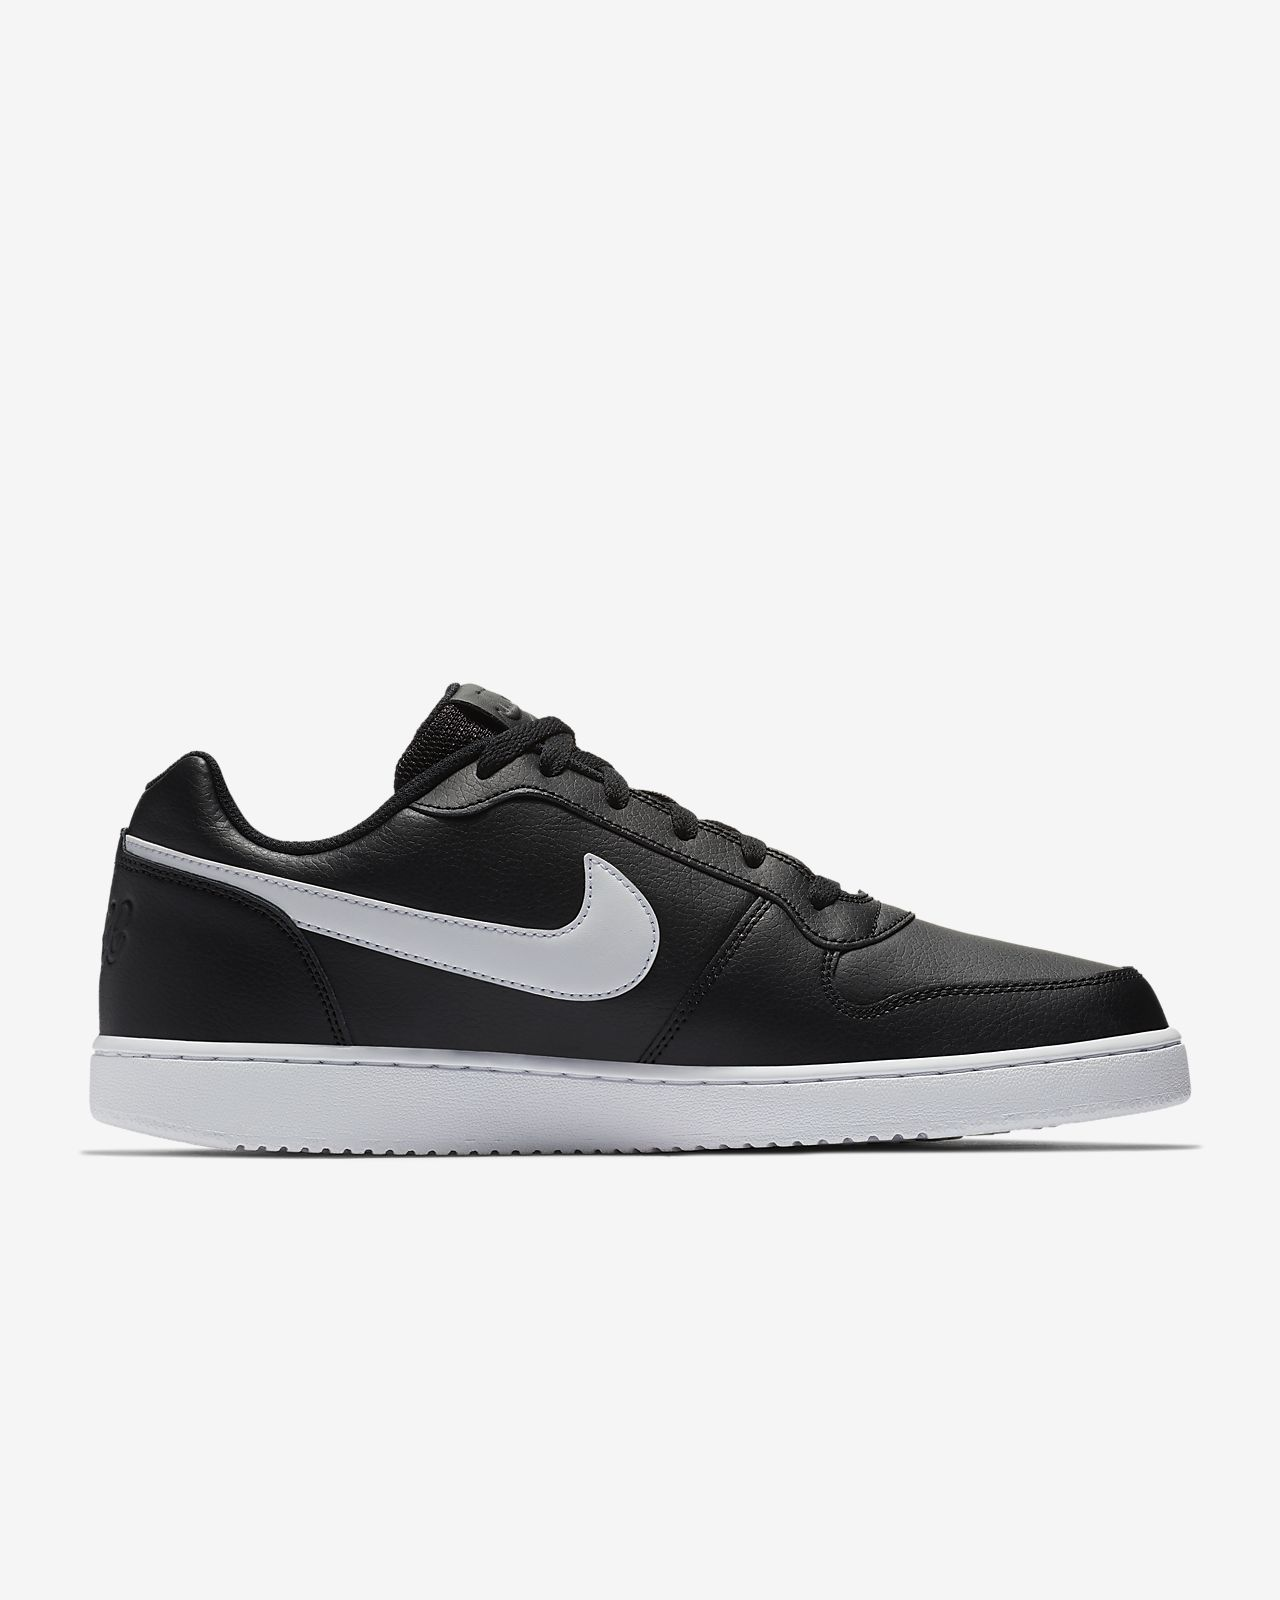 outlet a few days away huge sale Chaussure Nike Ebernon Low pour Homme